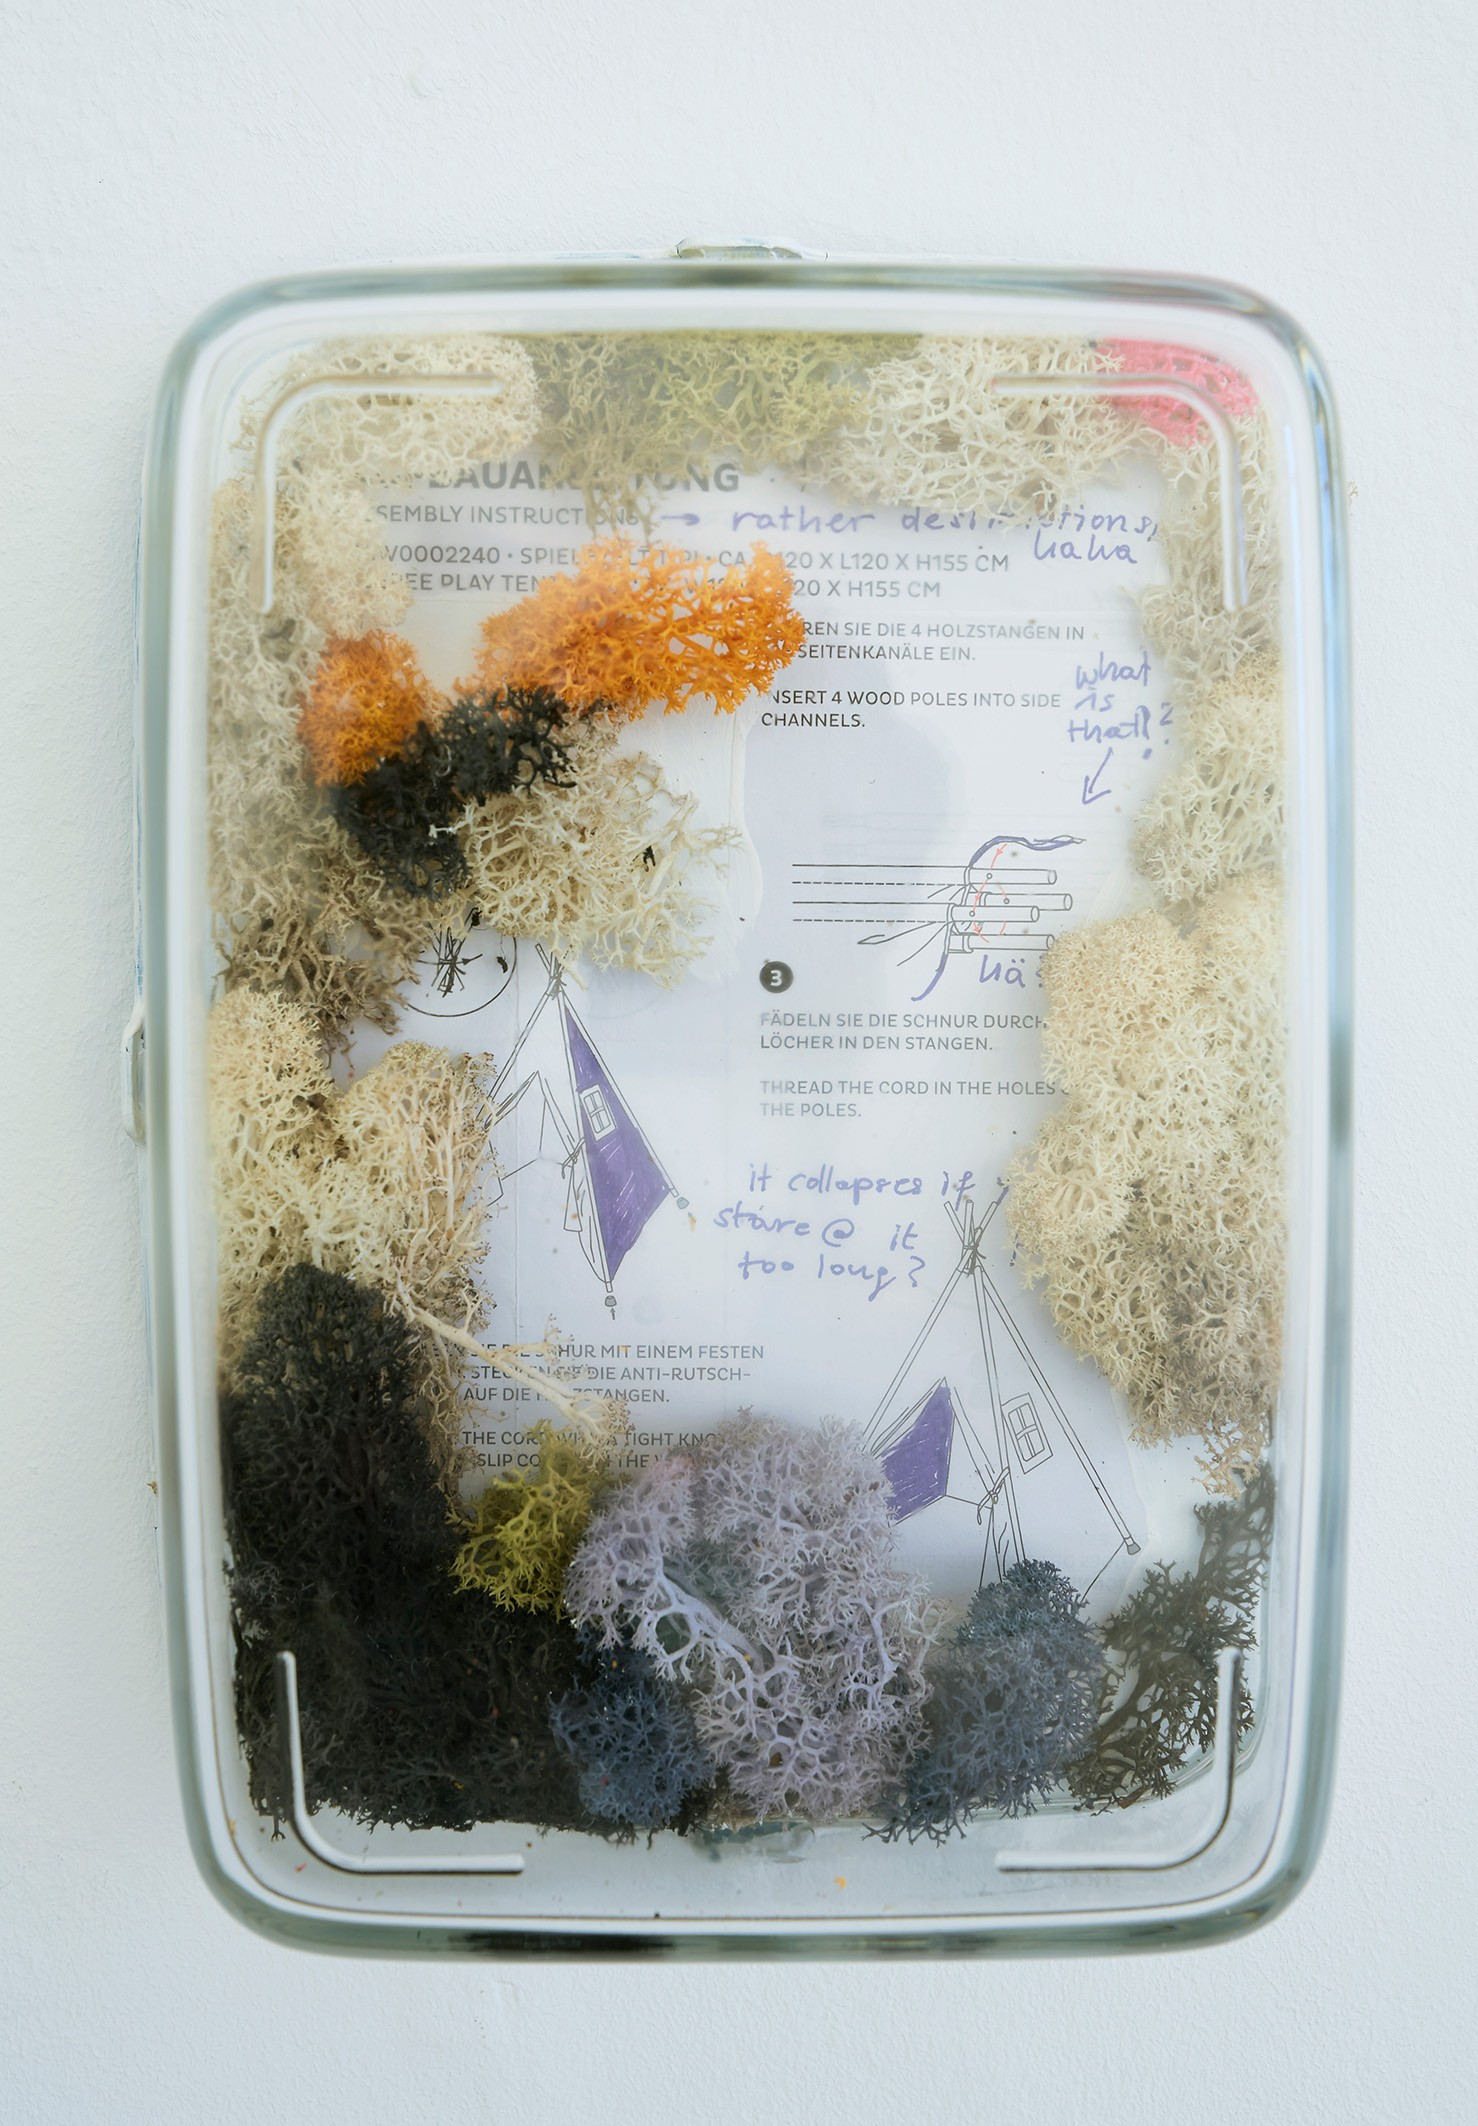 <BODY><div>Sophie Gogl, Without title, 2020</div><div>Mixed media</div><div>24 × 21 × 4 cm</div><div>© Verena Nagl</div></BODY>